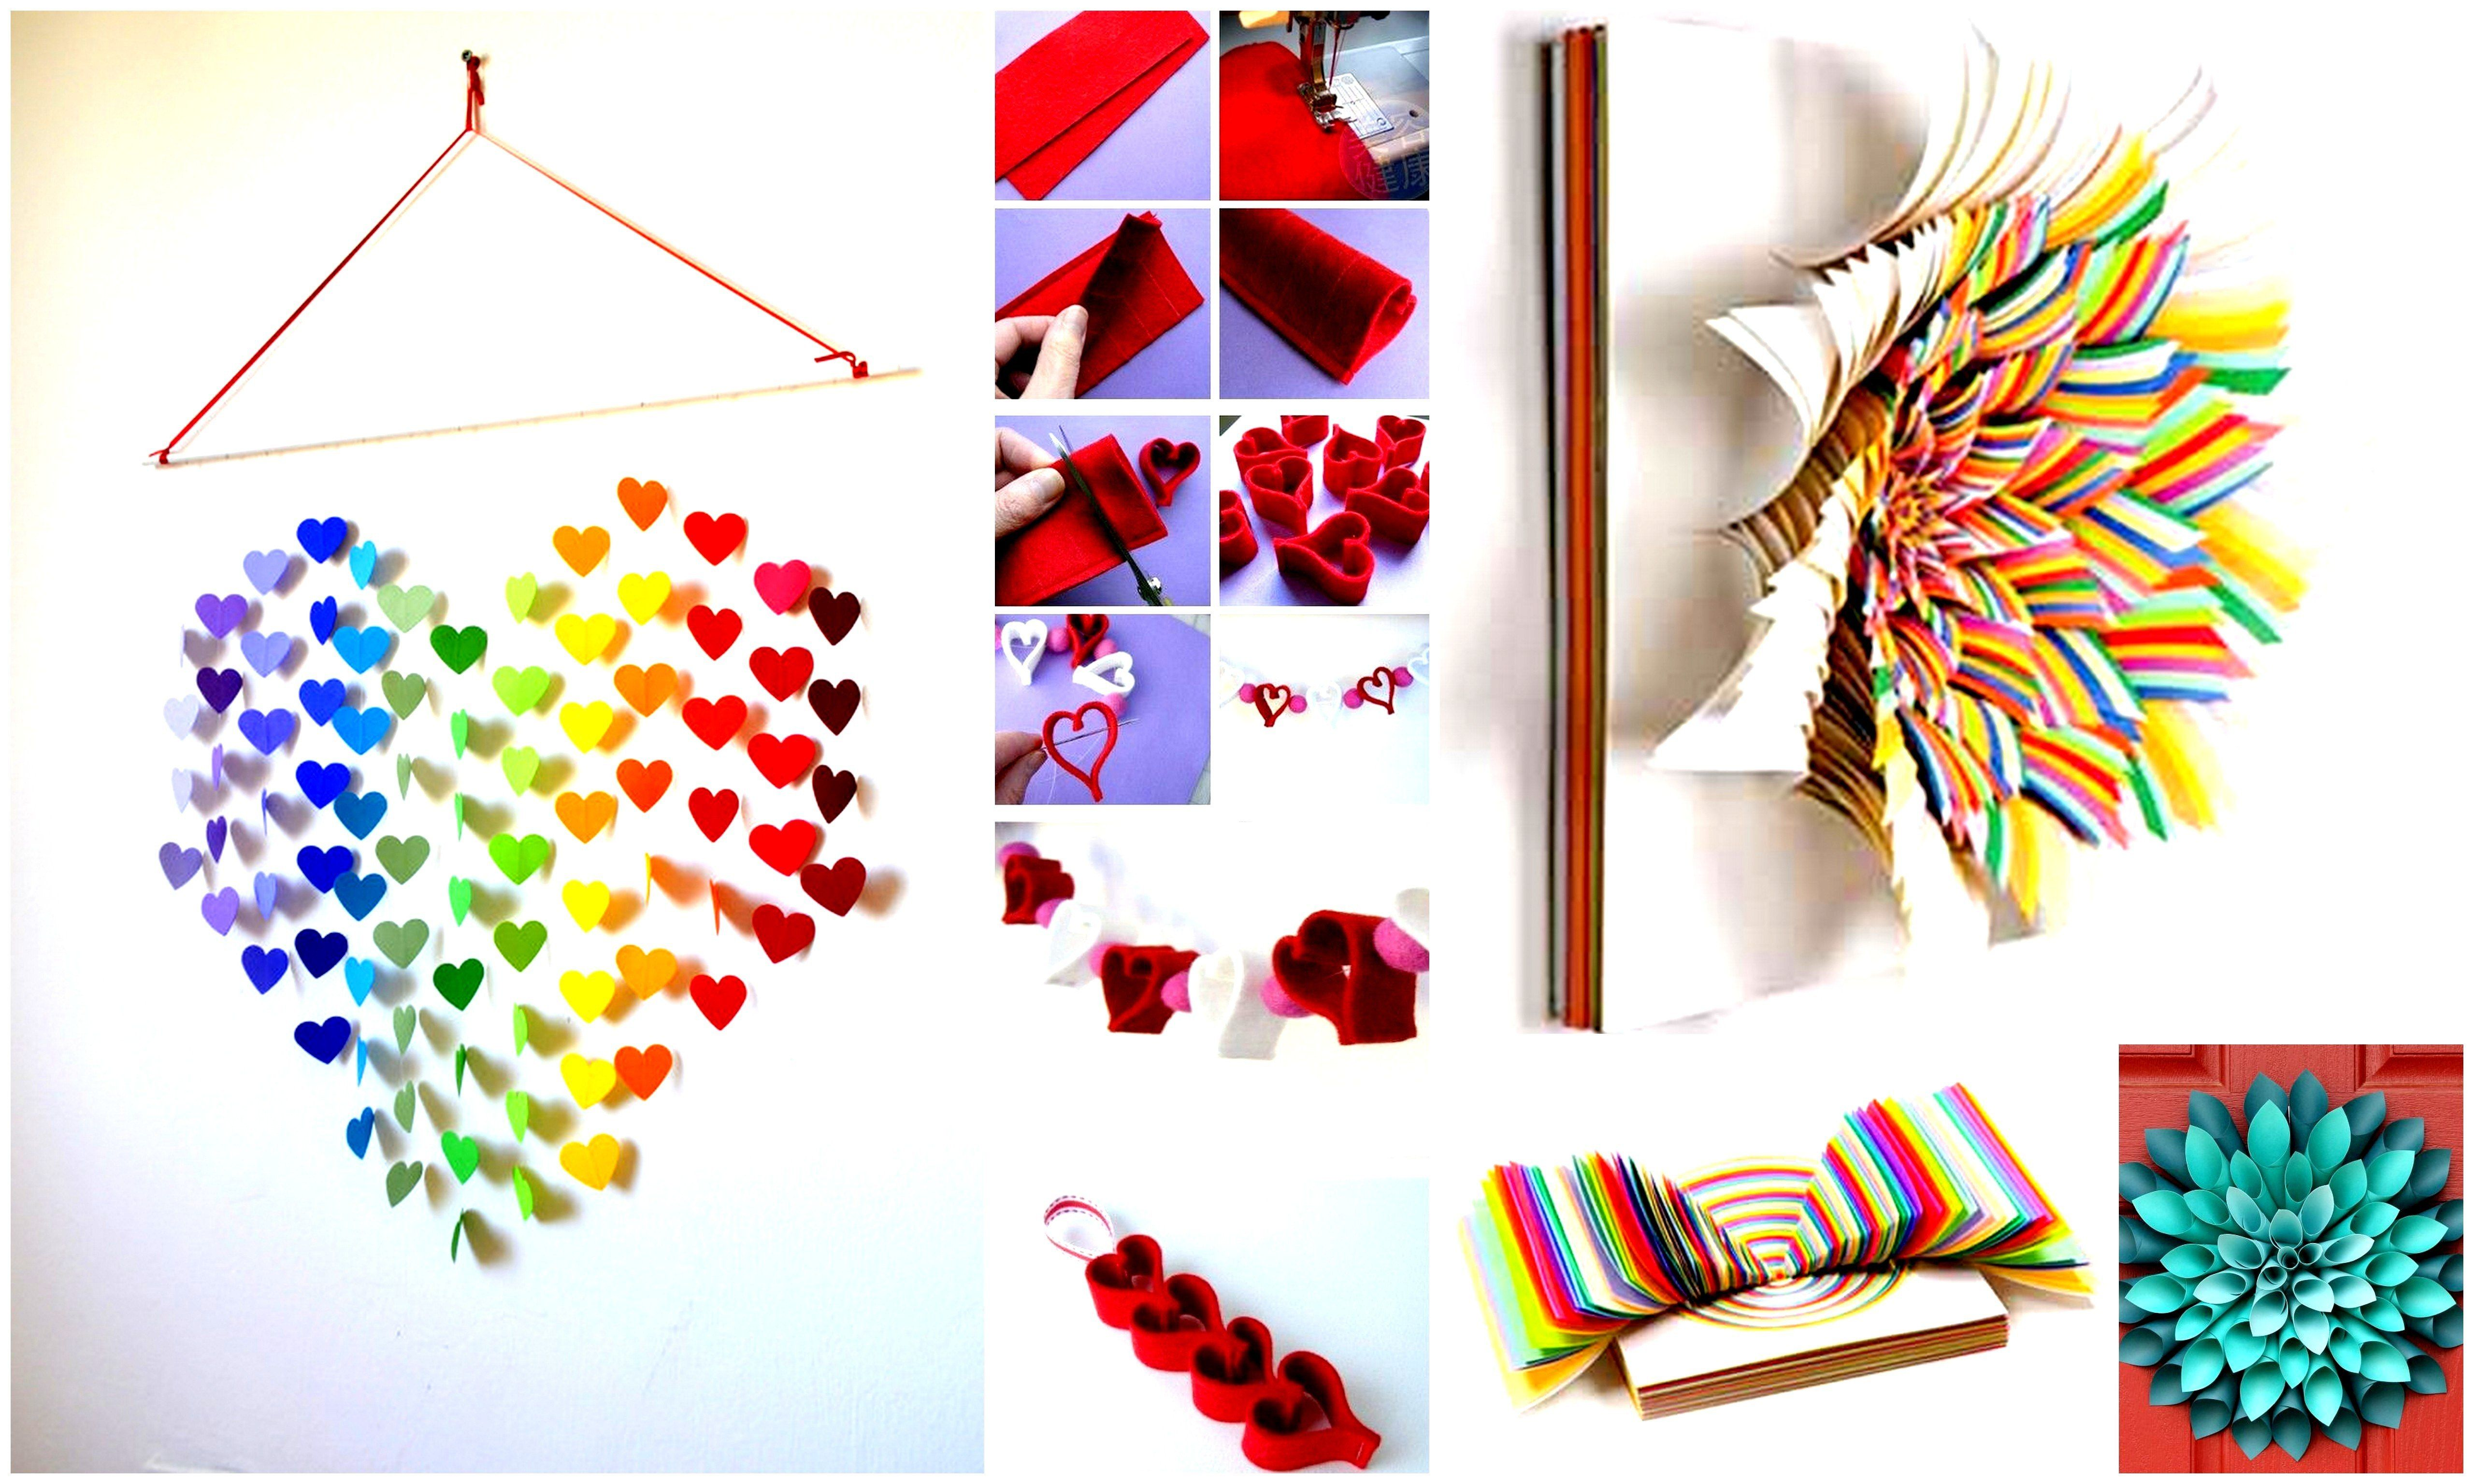 Diy Arts And Crafts 33 Creative 3d Wall Art Projects Meant To Beautify Your